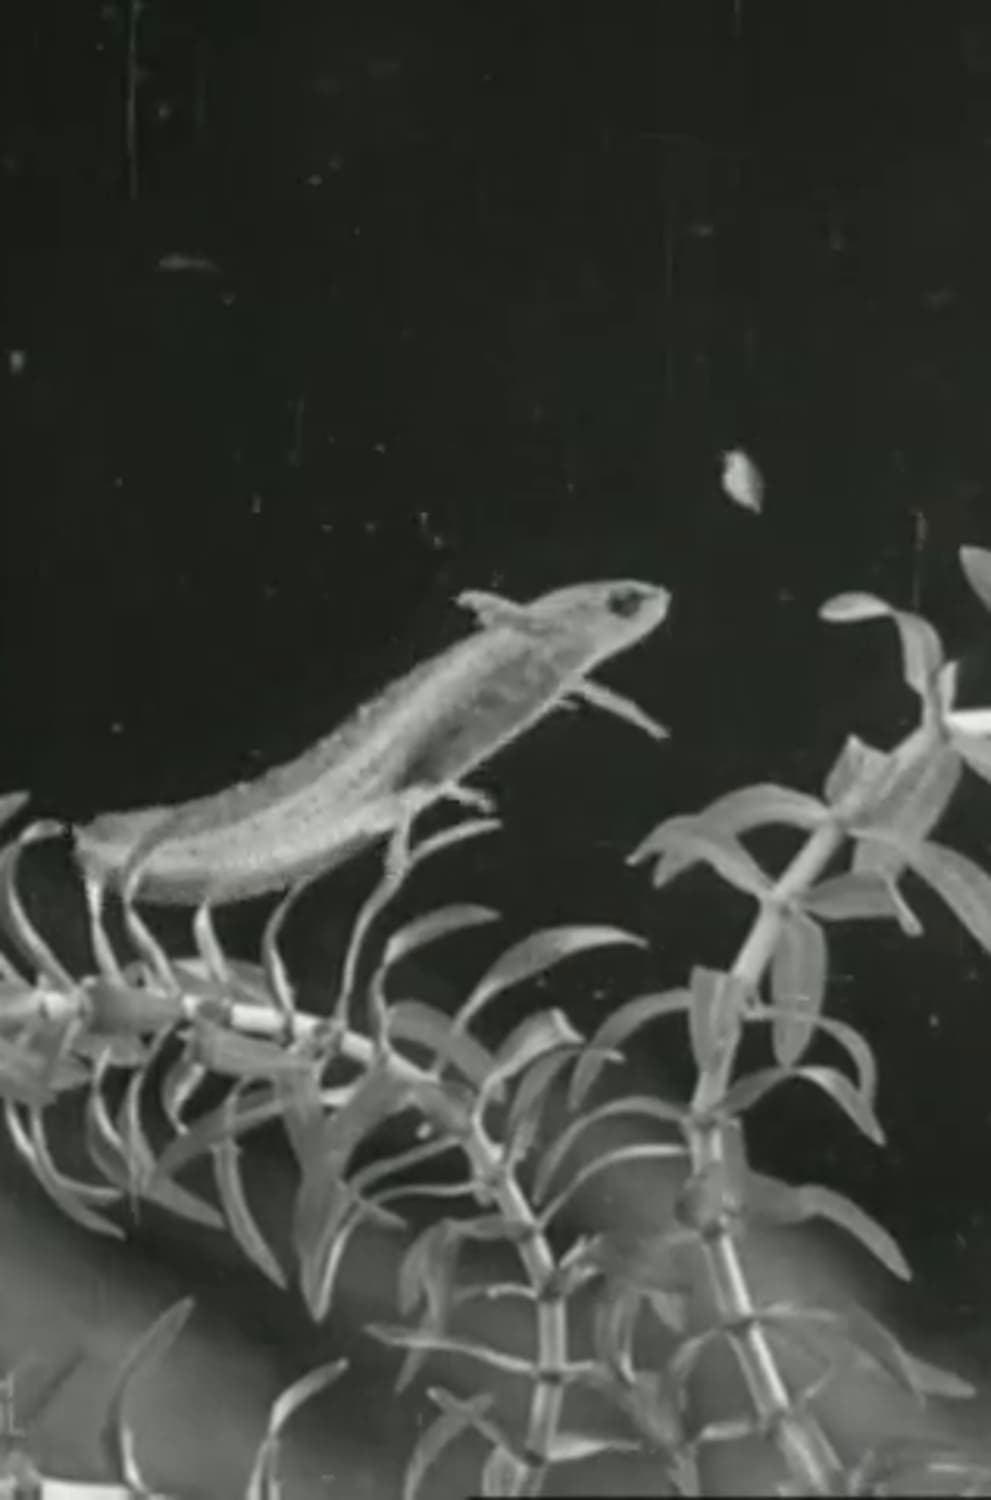 The Life Cycle of the Newt